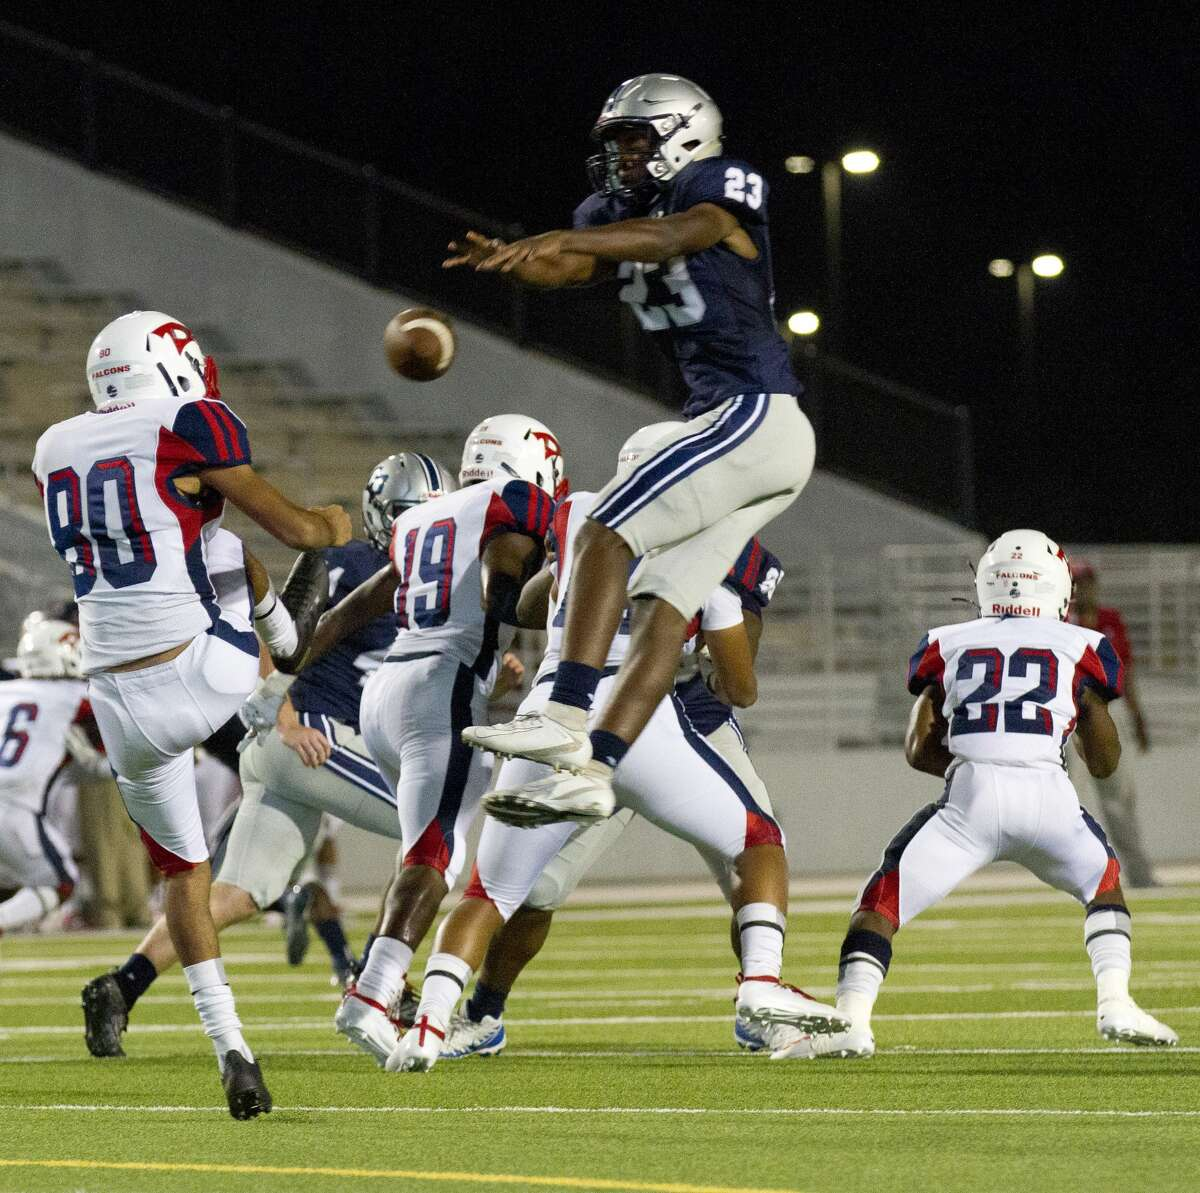 College Park linebacker Marcell Faulkner (23) blocks a punt by Aldine Davis punter Carlos Pardo (80) during the first quarter of a non-district high school football game at Woodforest Bank Stadium, Friday, Aug. 30, 2019, in Shenandoah. Faulkner recovered the blocked punt in the endzone for a touchdown.